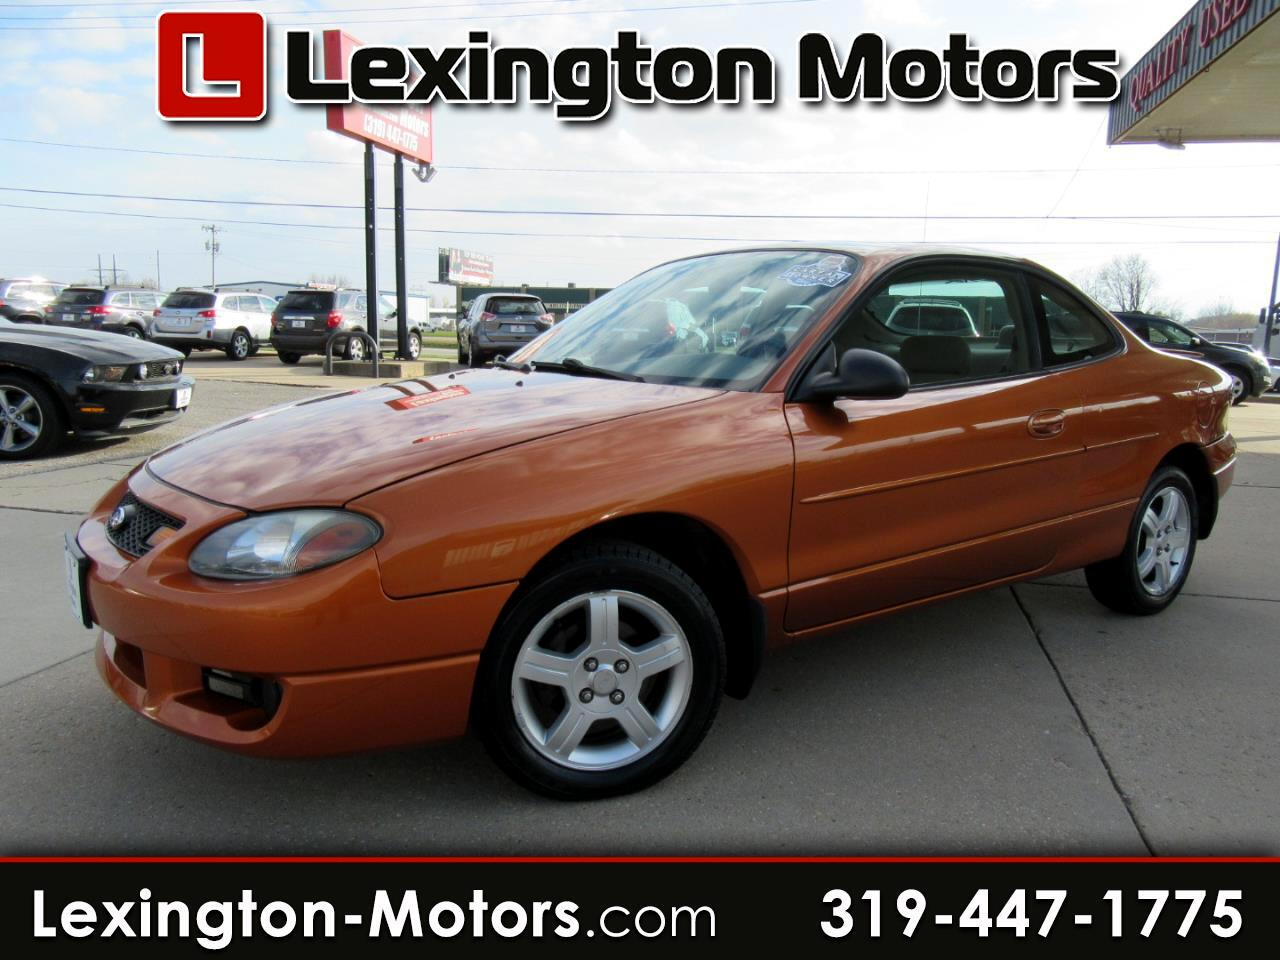 2003 Ford ZX2 Deluxe